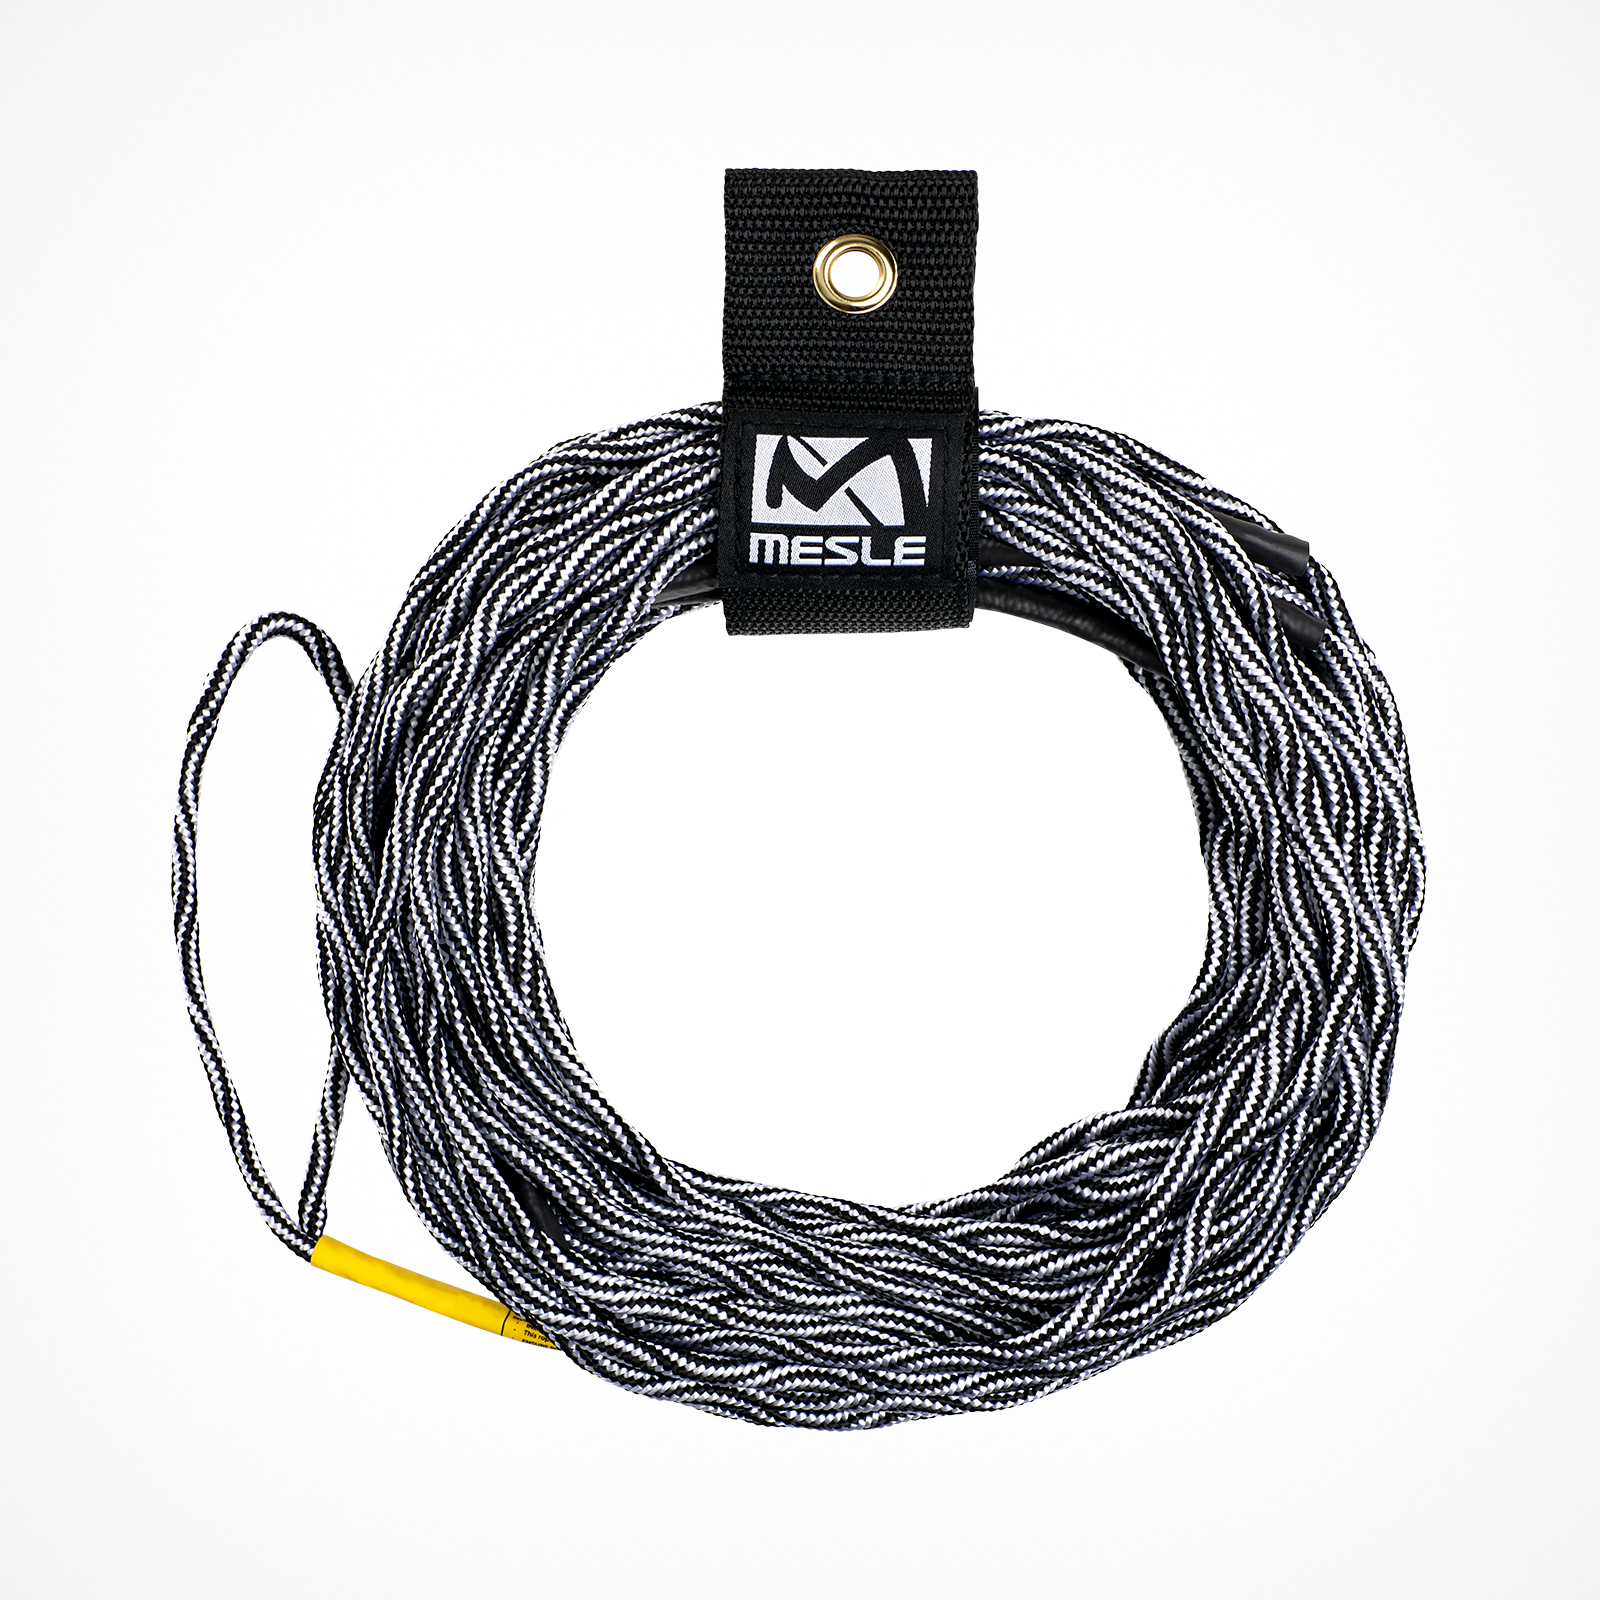 MESLE Wakeboard Rope SIX 65' in black and white, Non-Stretch Spectra Rope, Length 15.2 m - 19.8 m, 3 Sections, Dyneema Wakeboard-Rope, floating, inclusive Rope Keeper